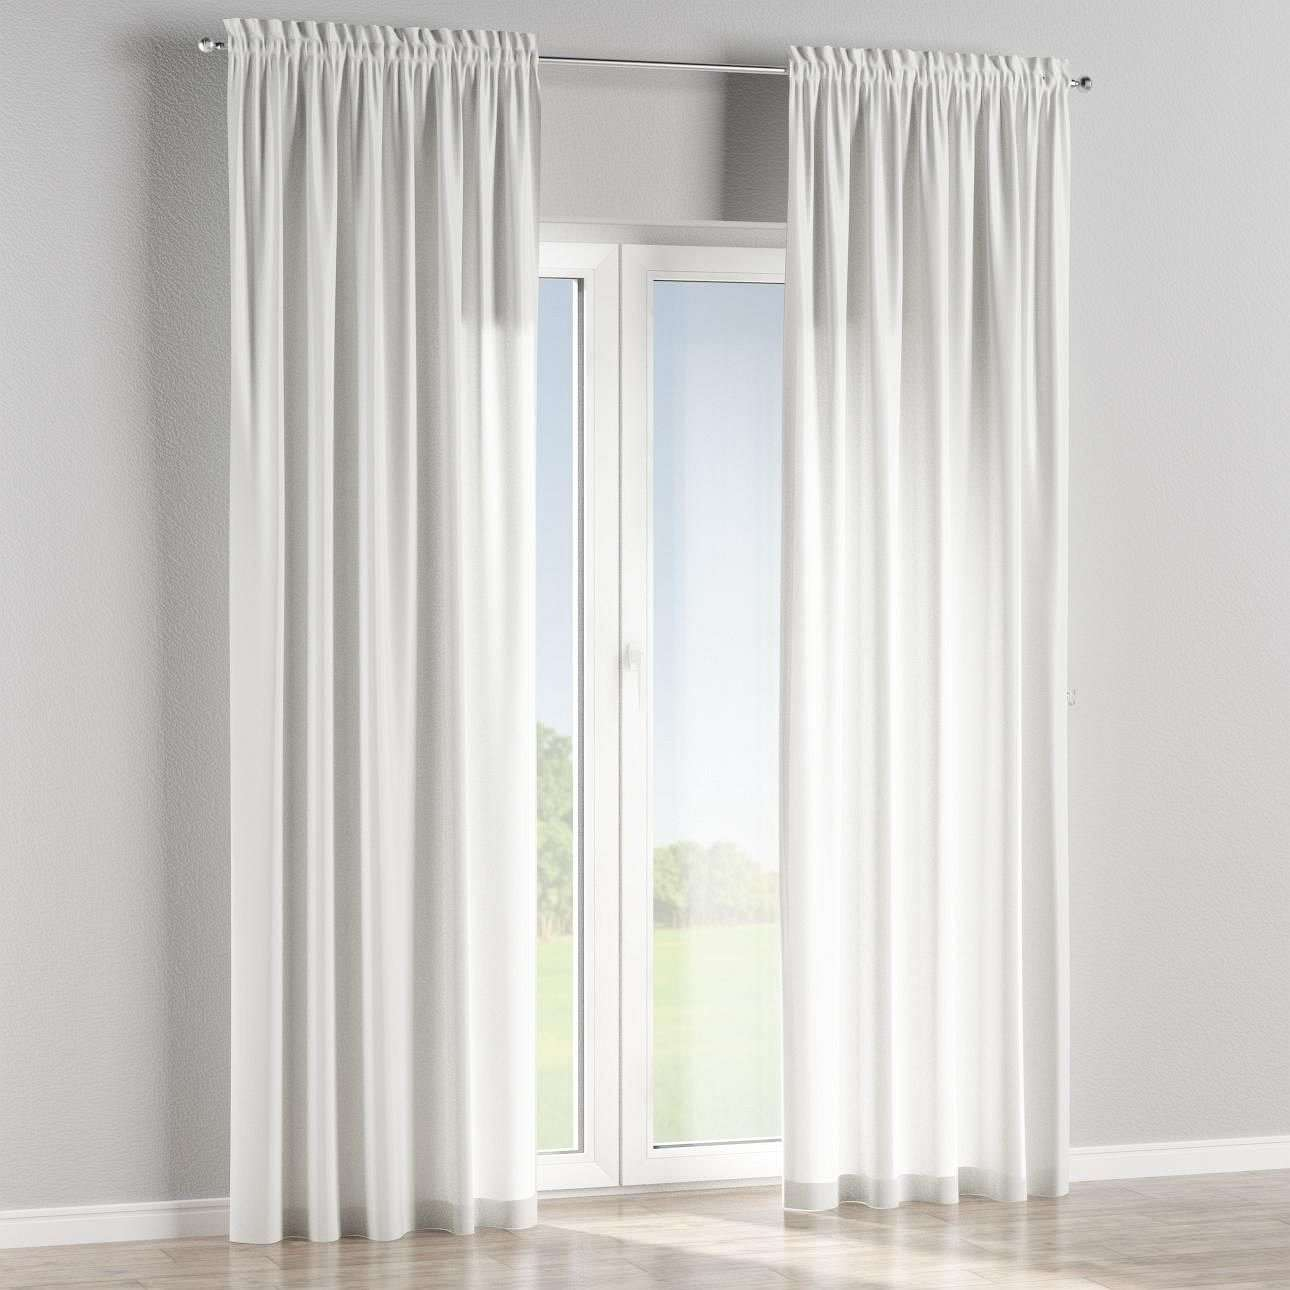 Slot and frill lined curtains in collection SALE, fabric: 137-26